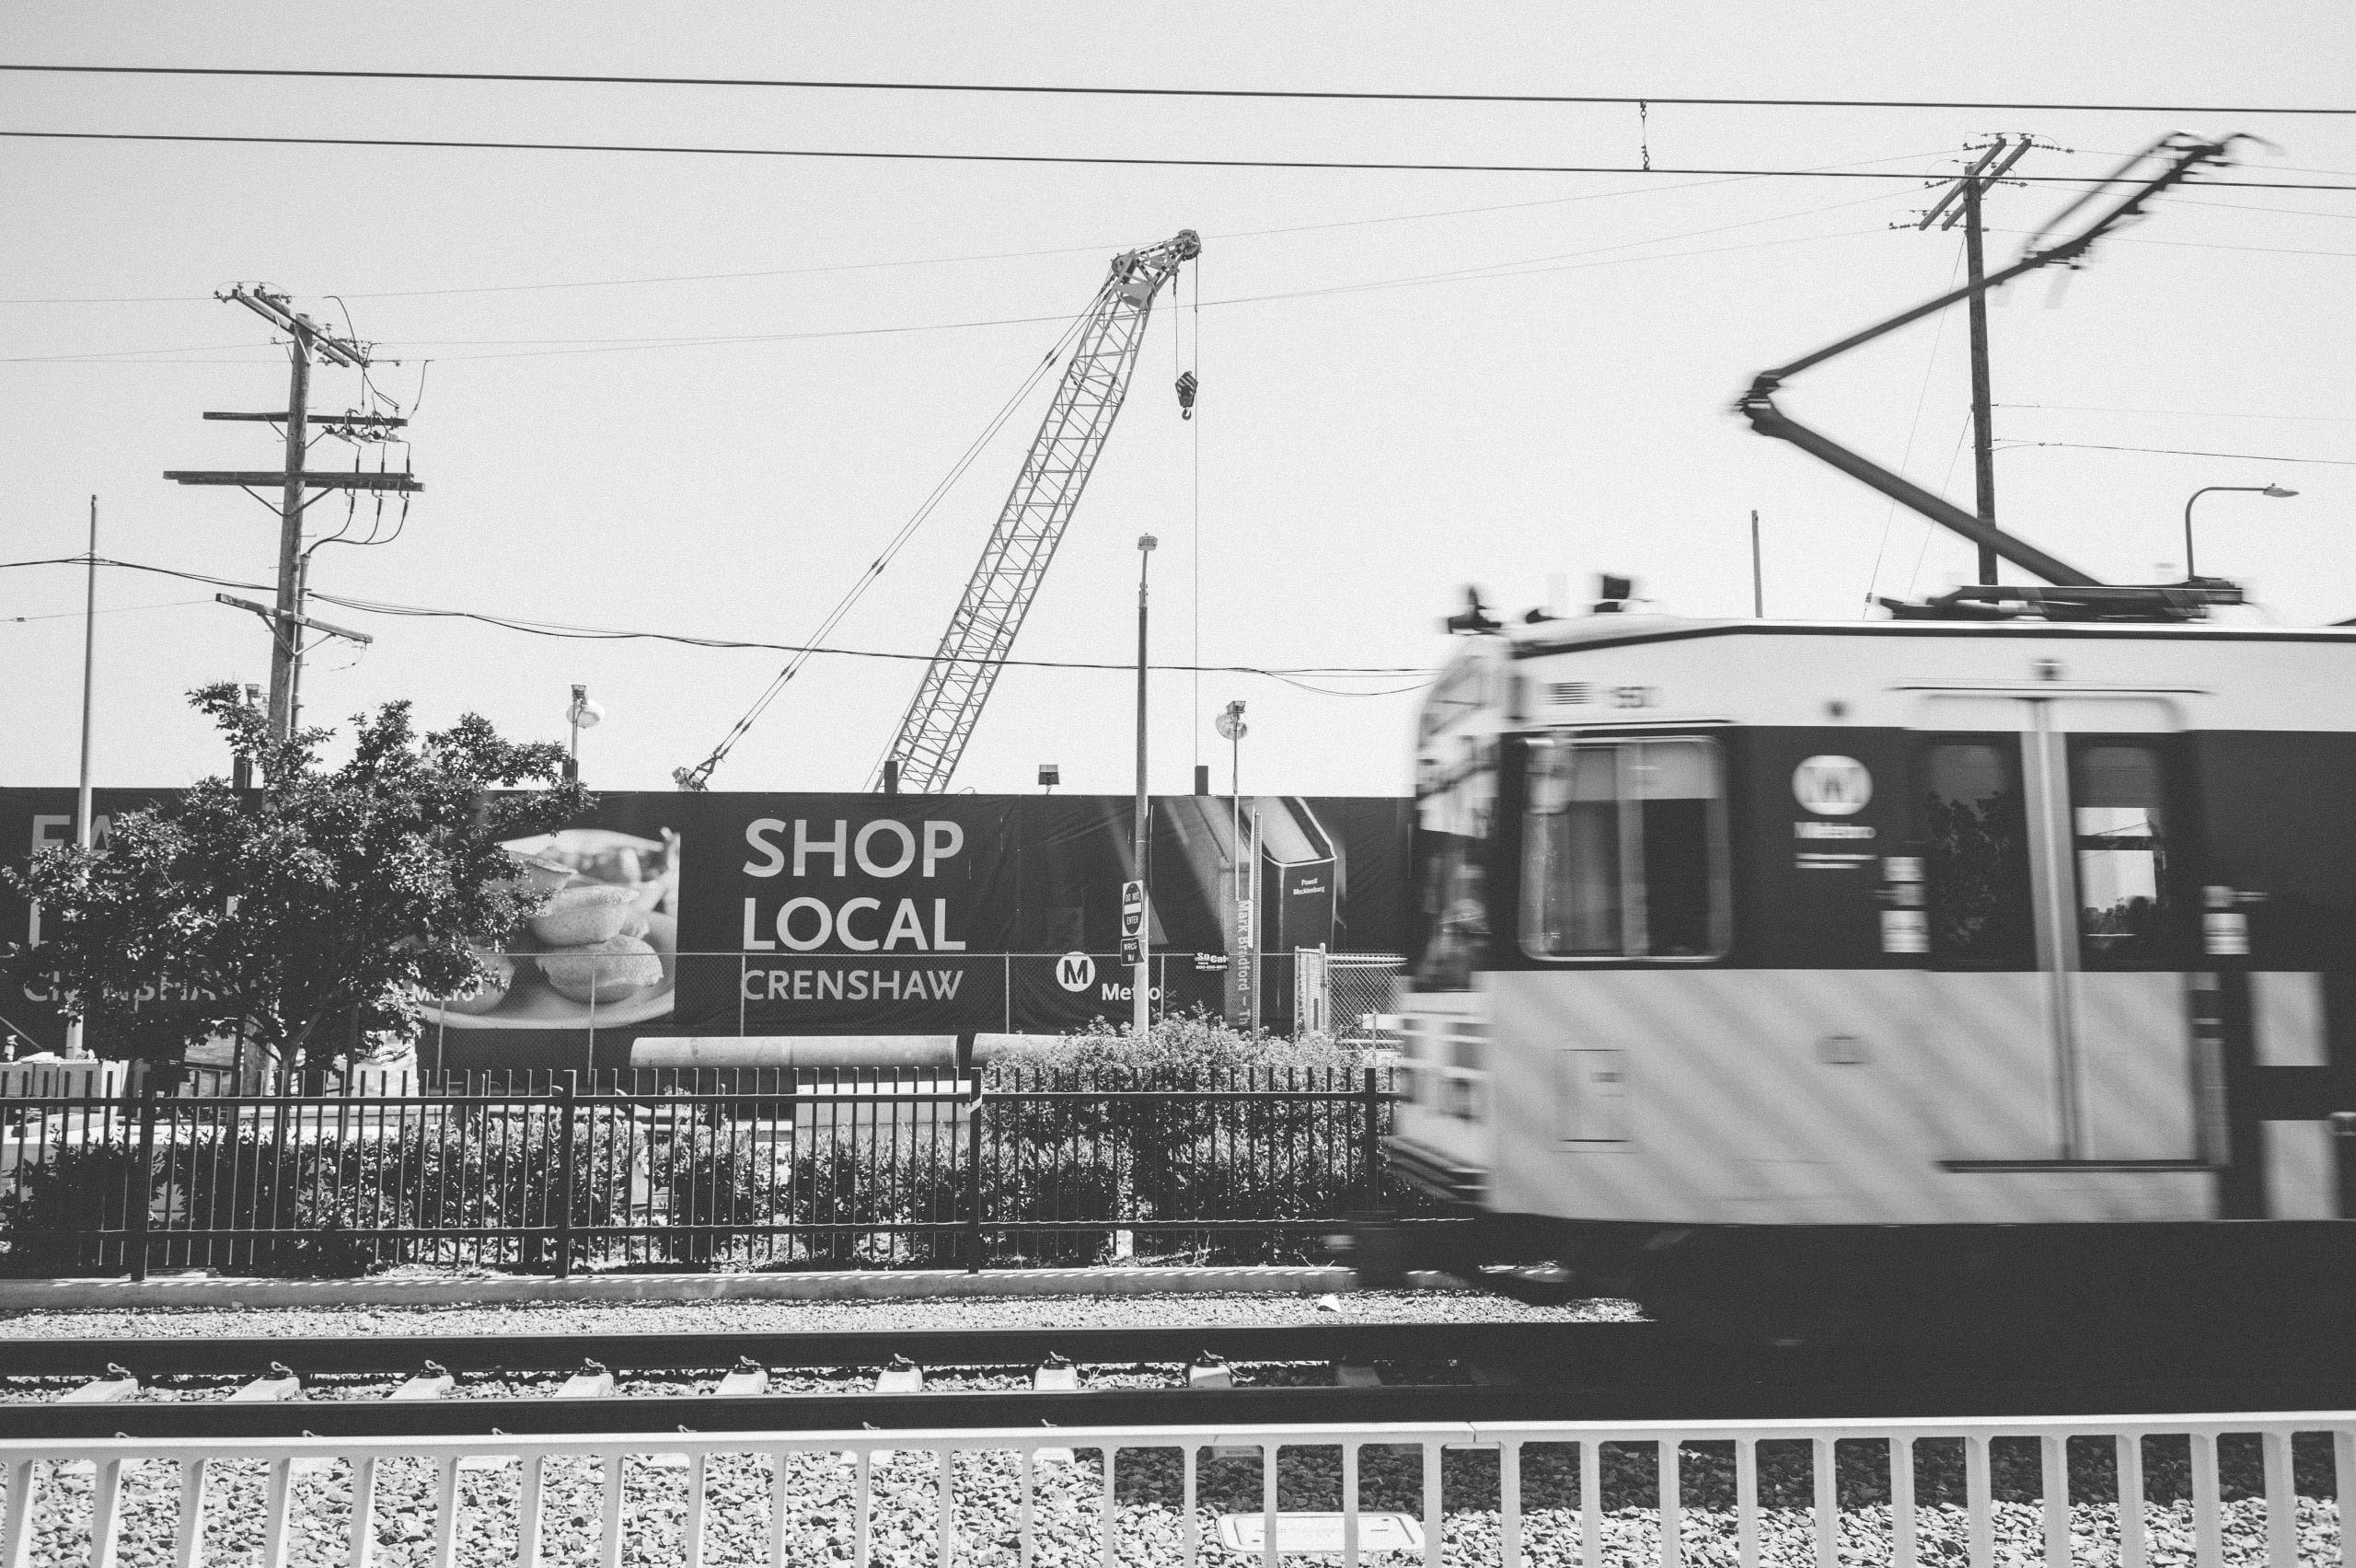 An Expo Line train passes the construction site for the Crenshaw/Expo Station for the Crenshaw/LAX Line.